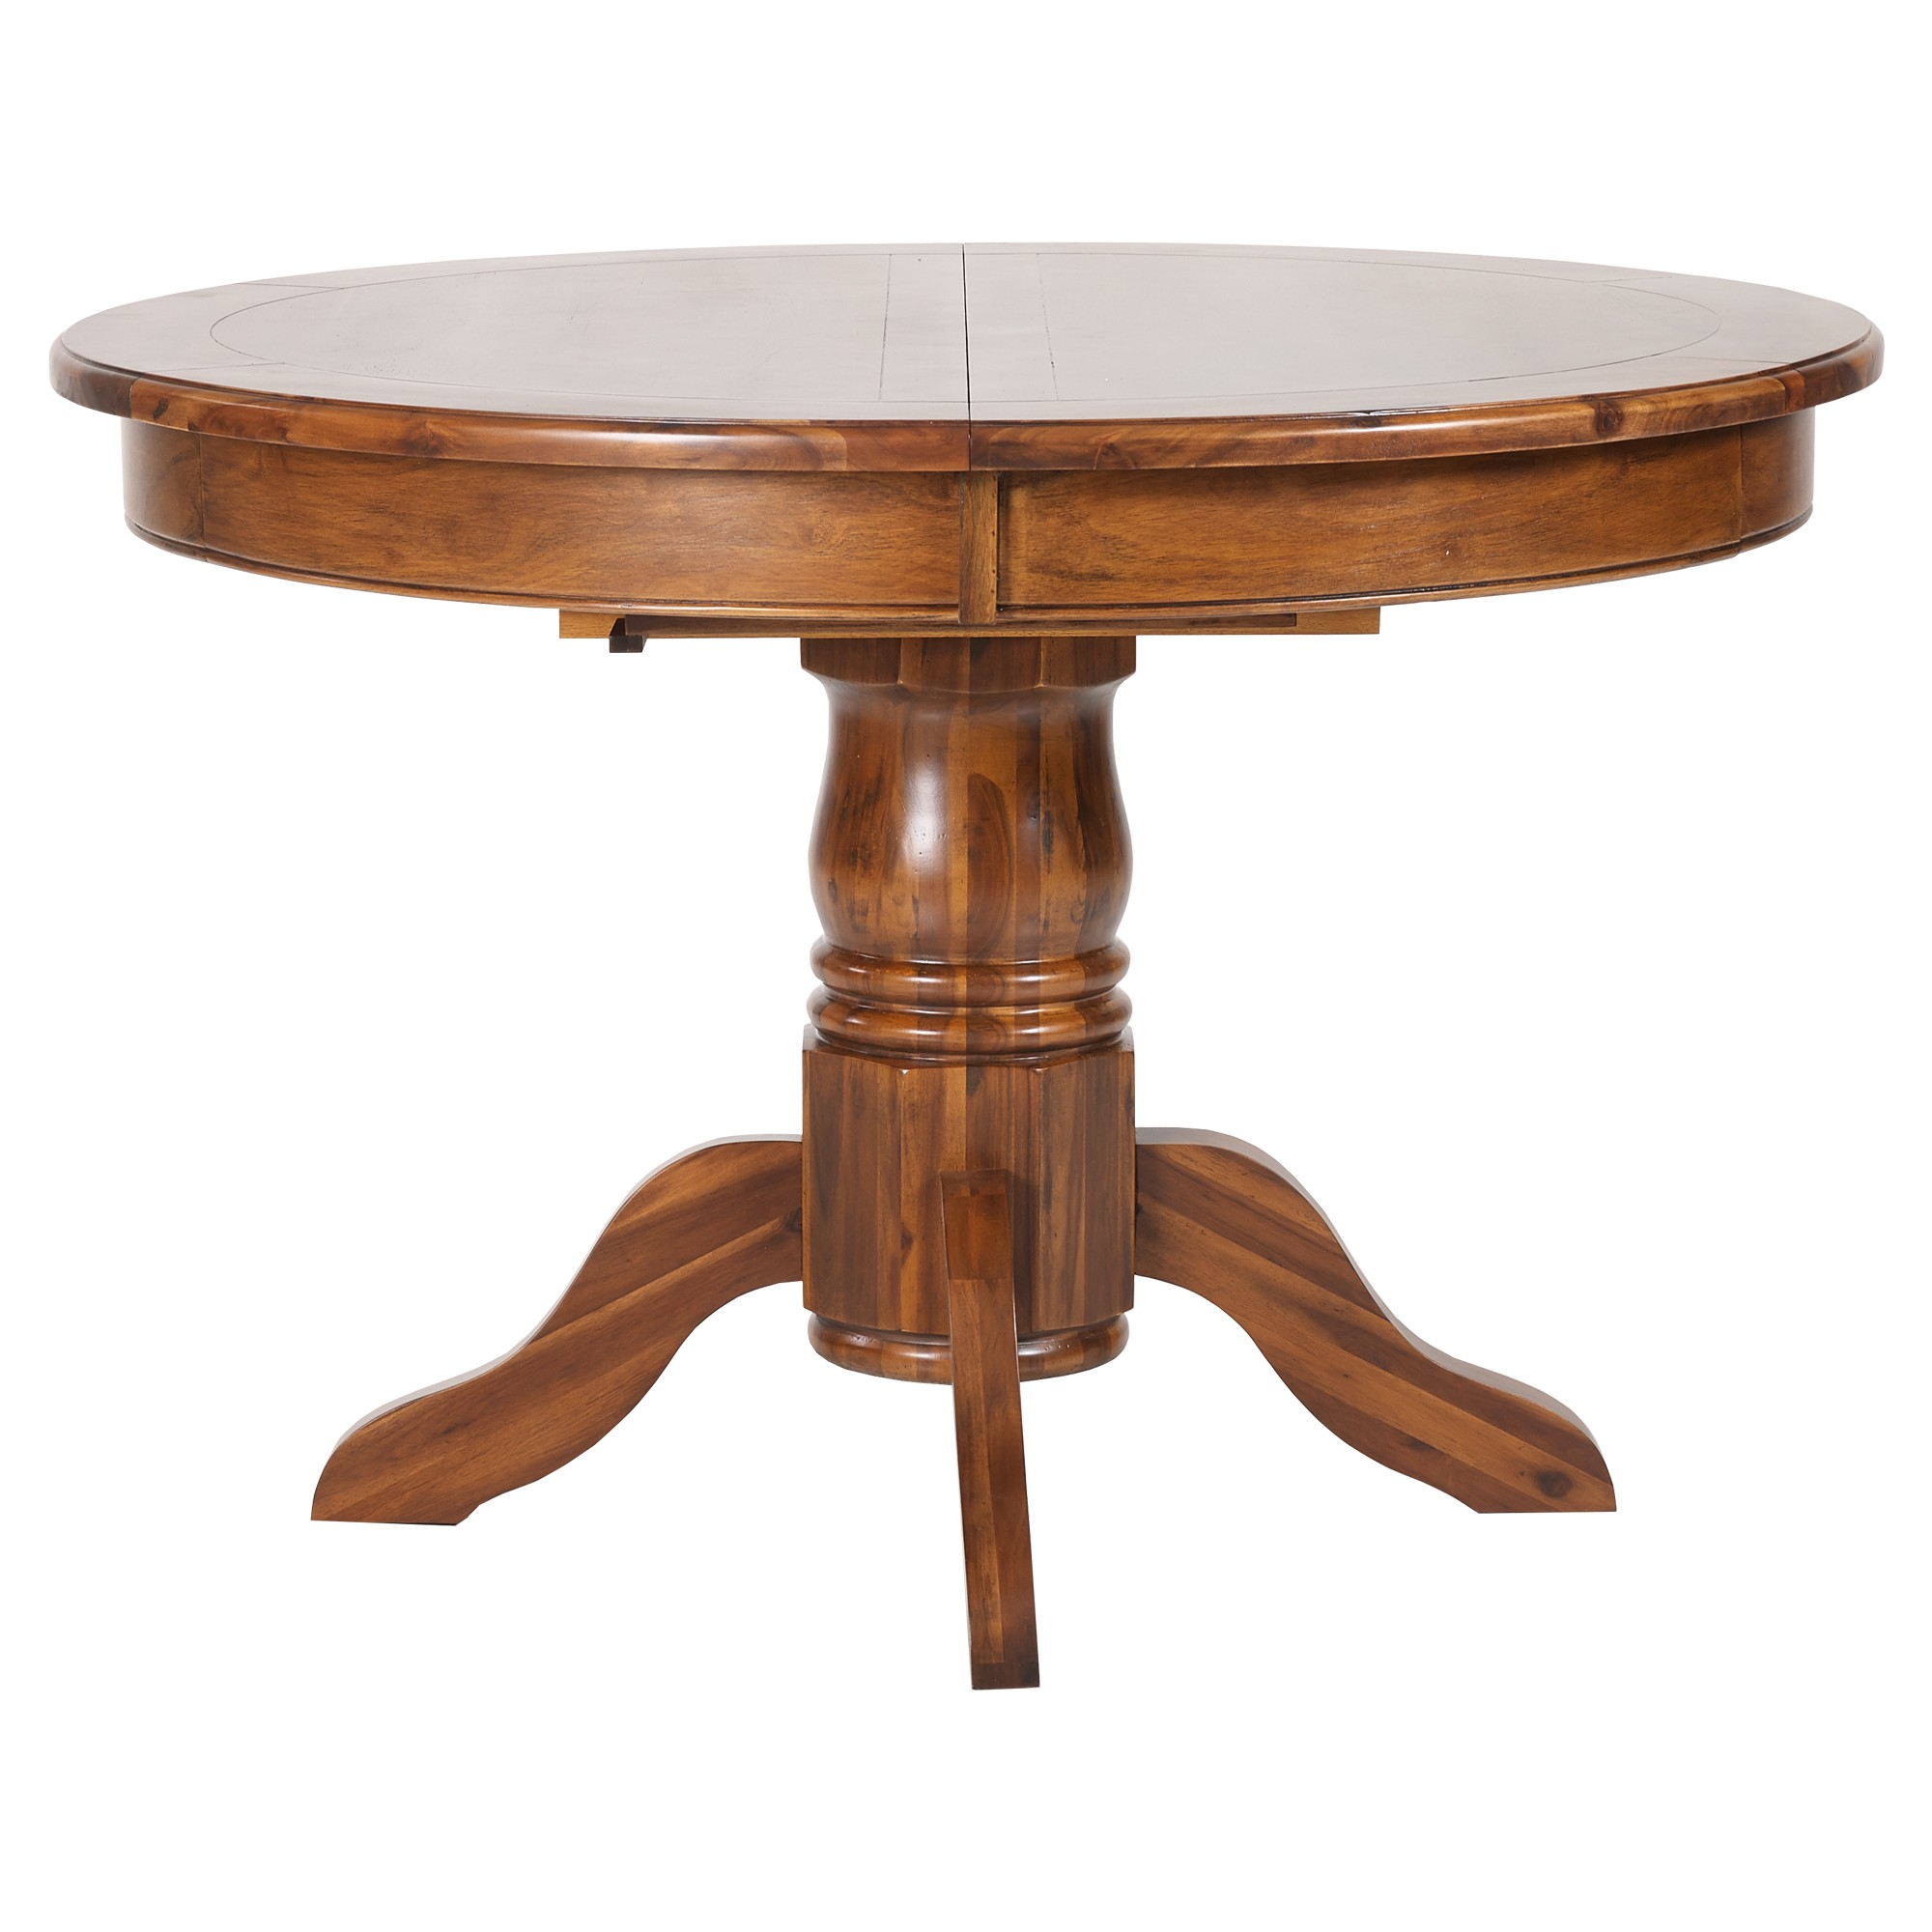 Chaucer Round Extending Dining Table